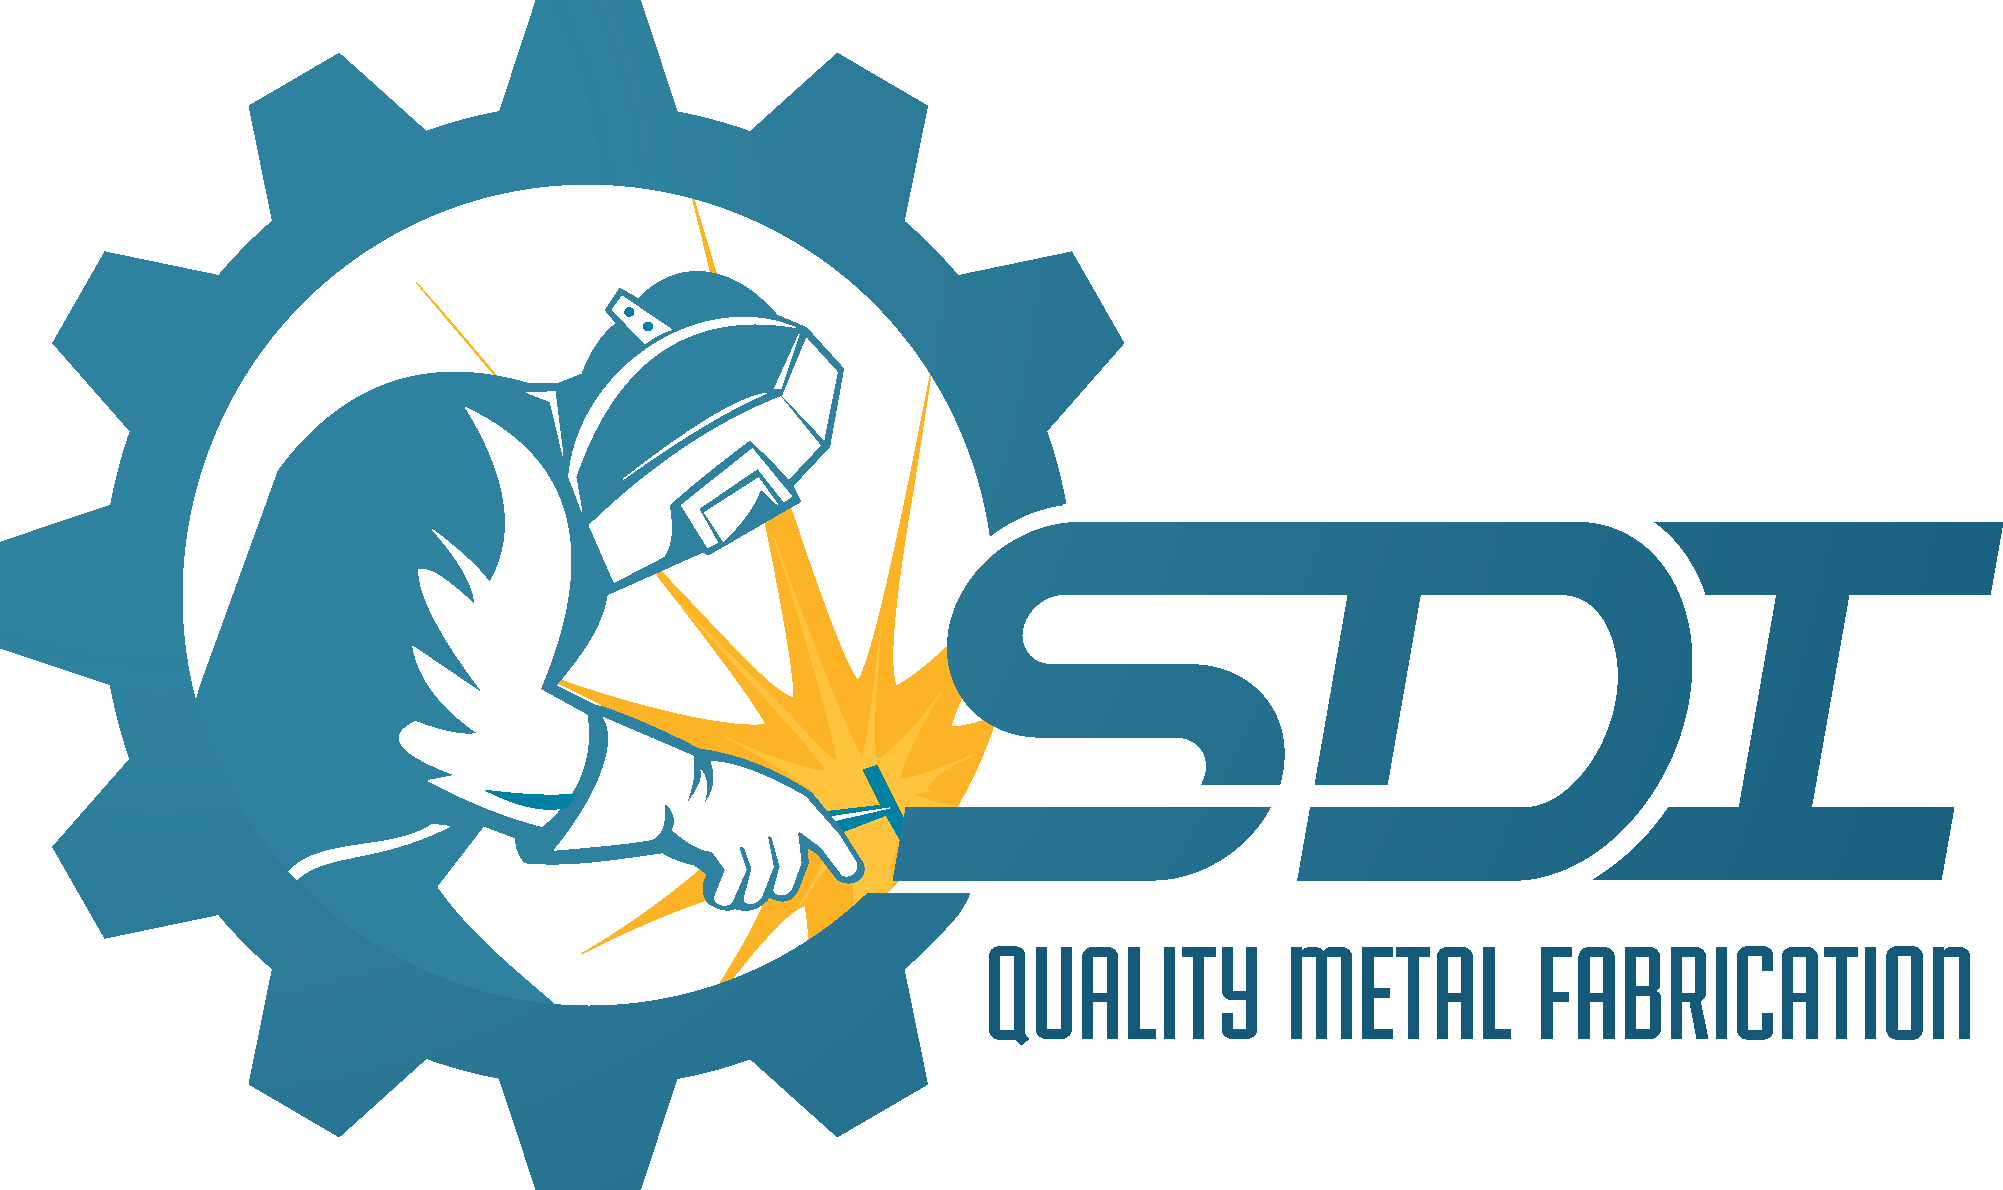 QUALITY METAL FABRICATION